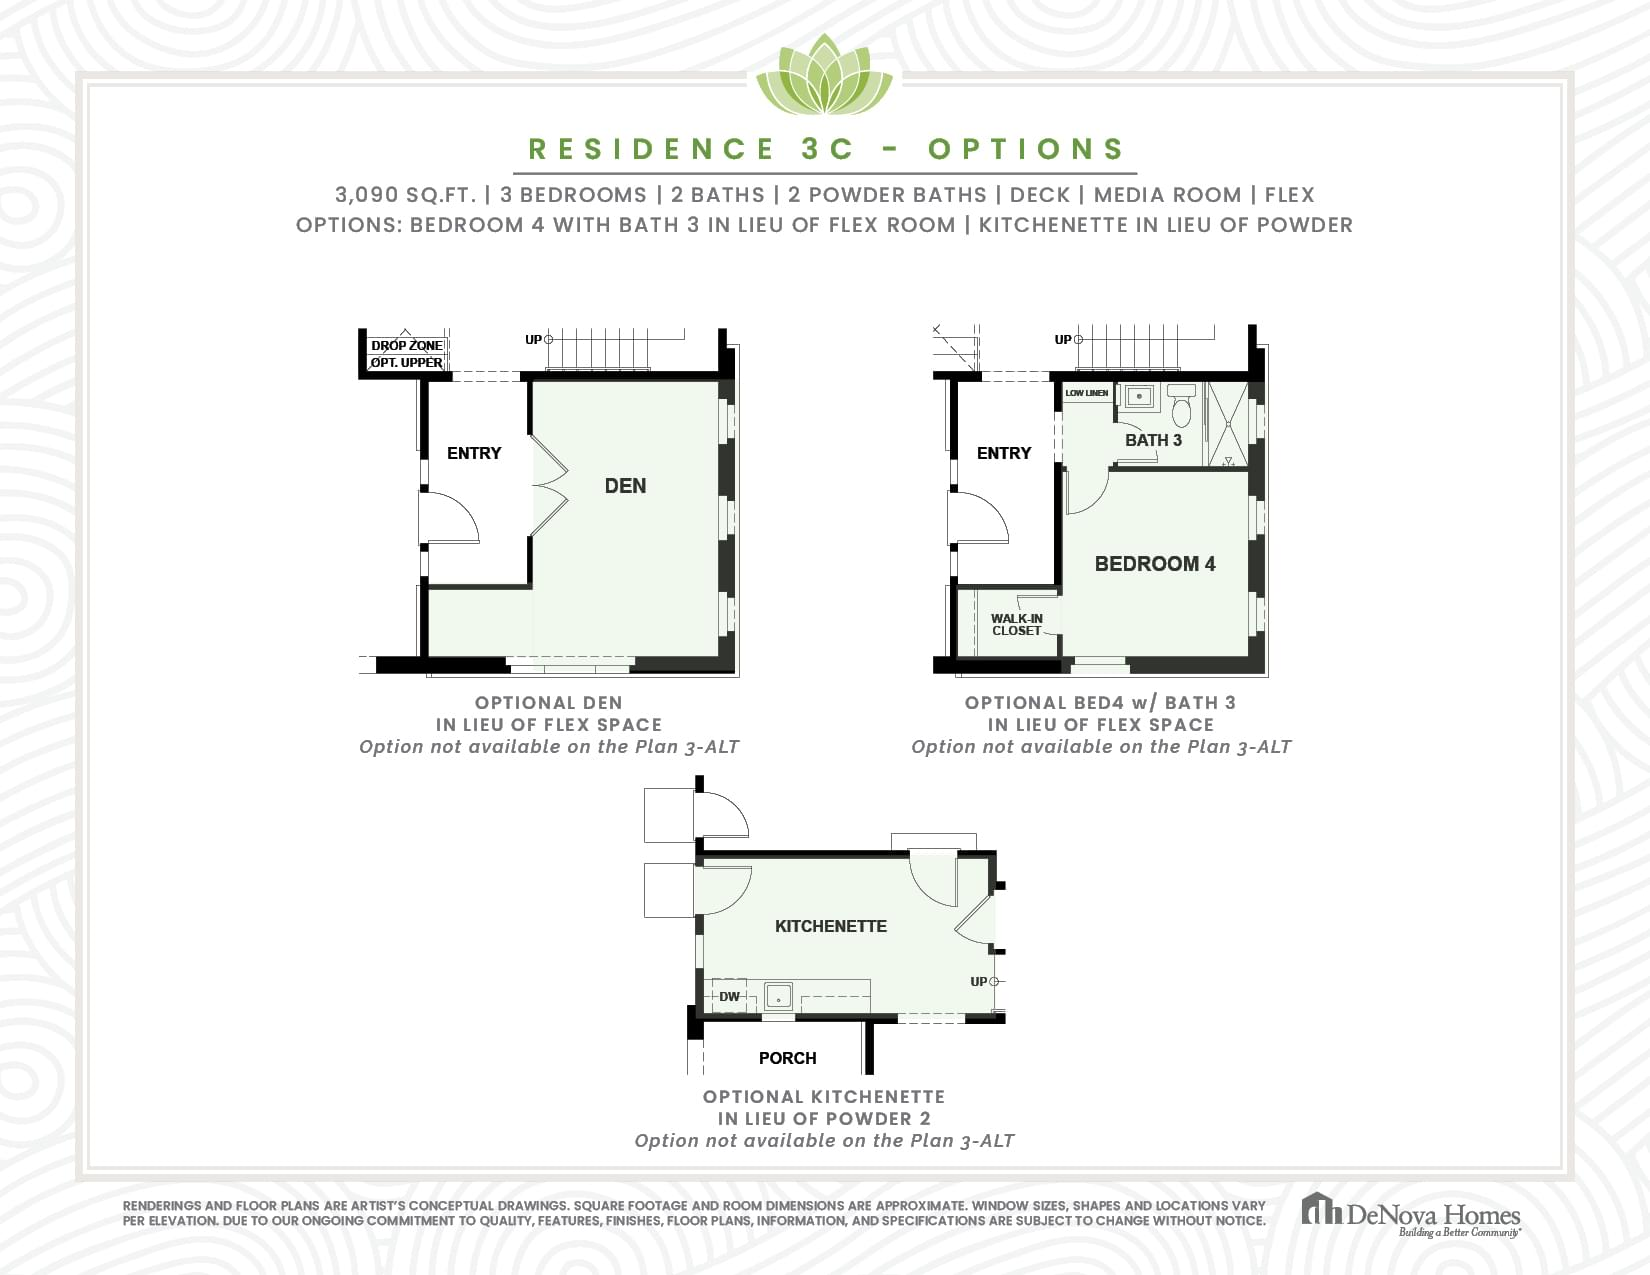 Residence 3 Options. New Home in San Jose, CA